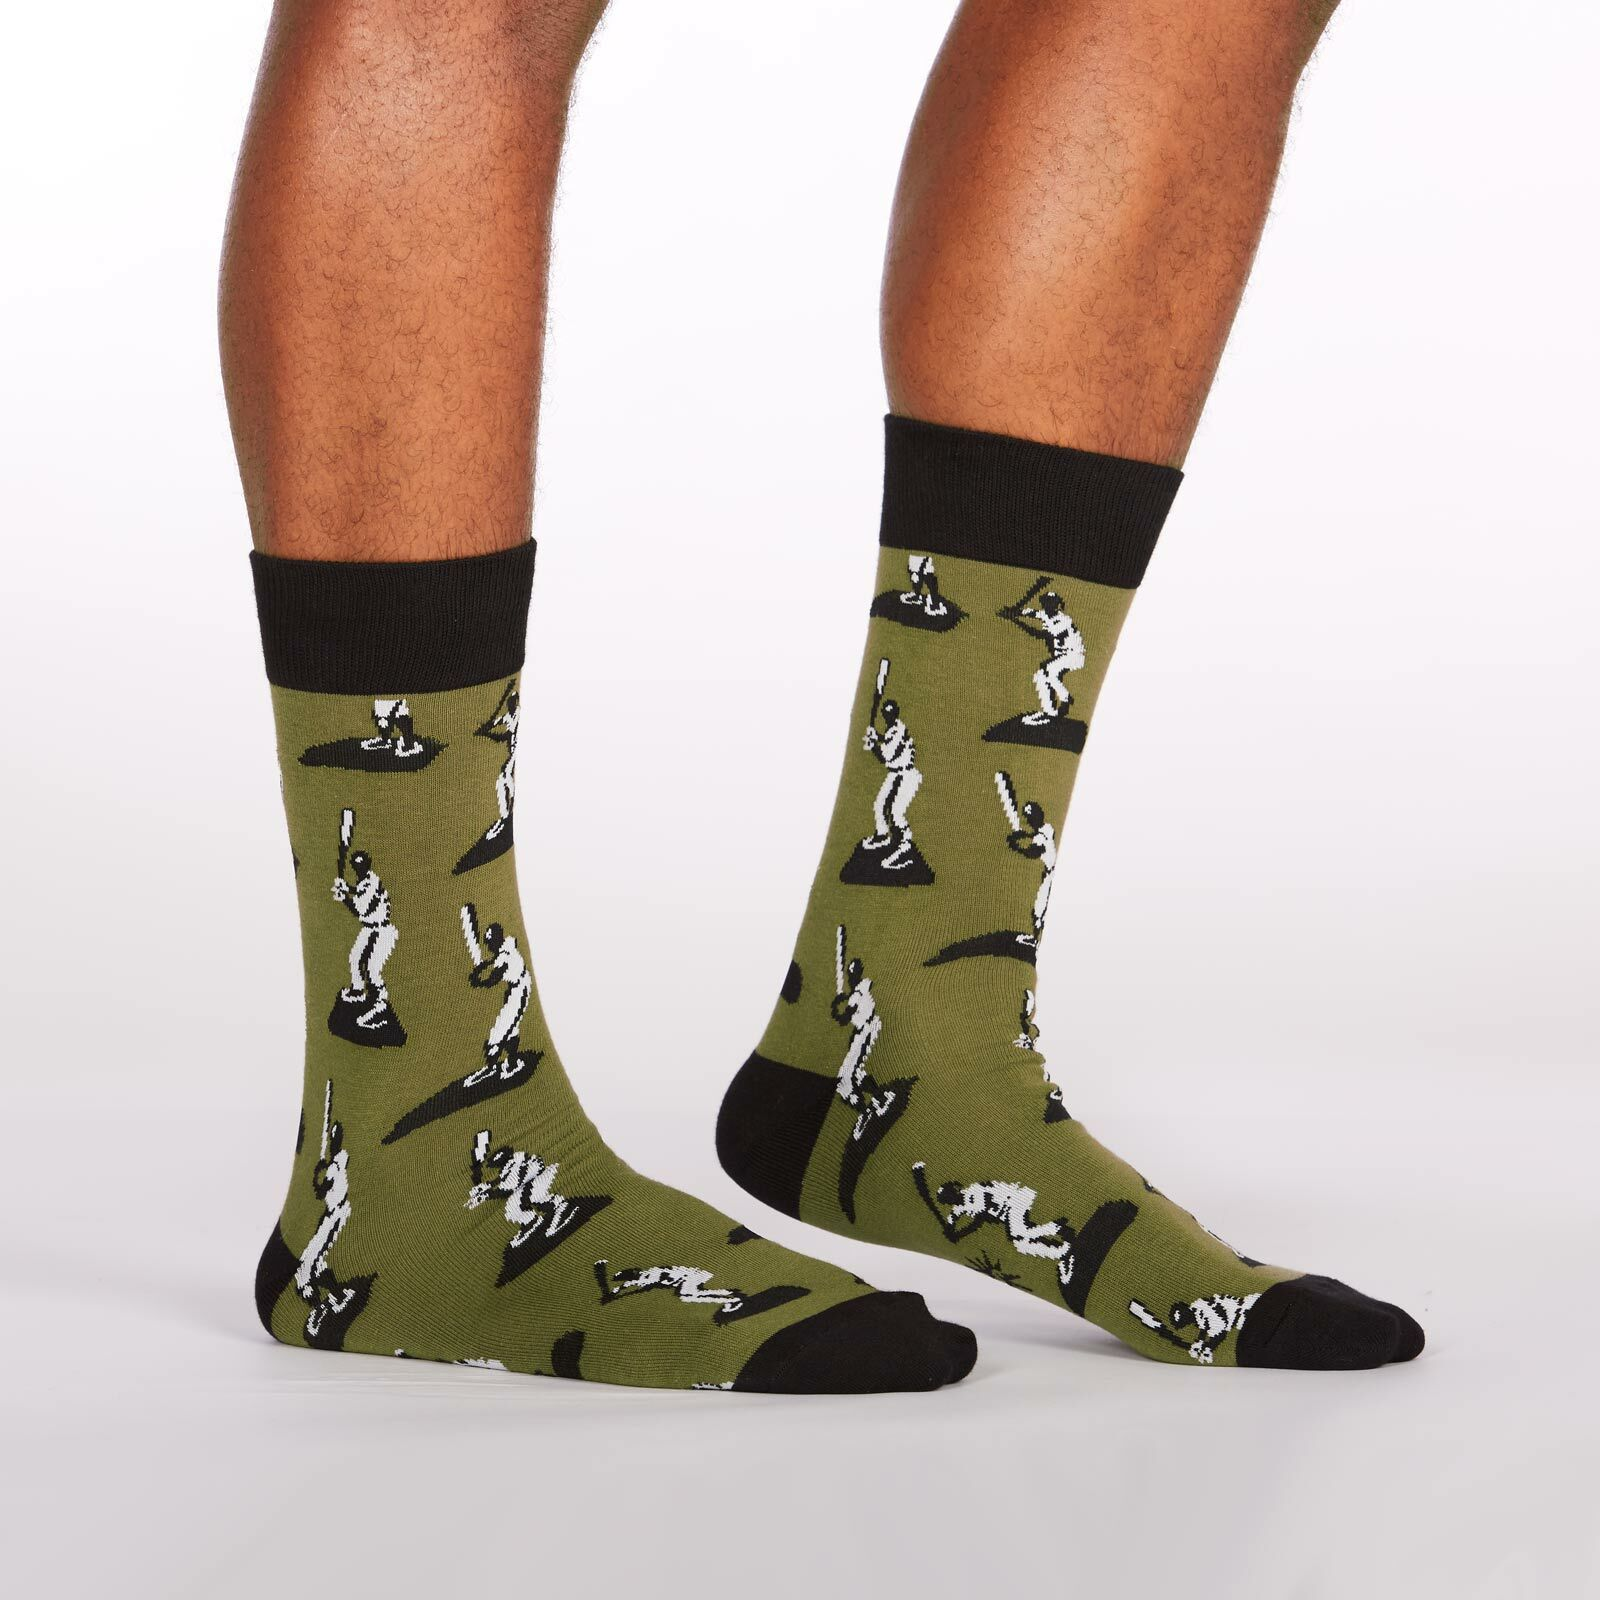 Batter Up - Baseball Crew Socks Black and Green - Men's in Green